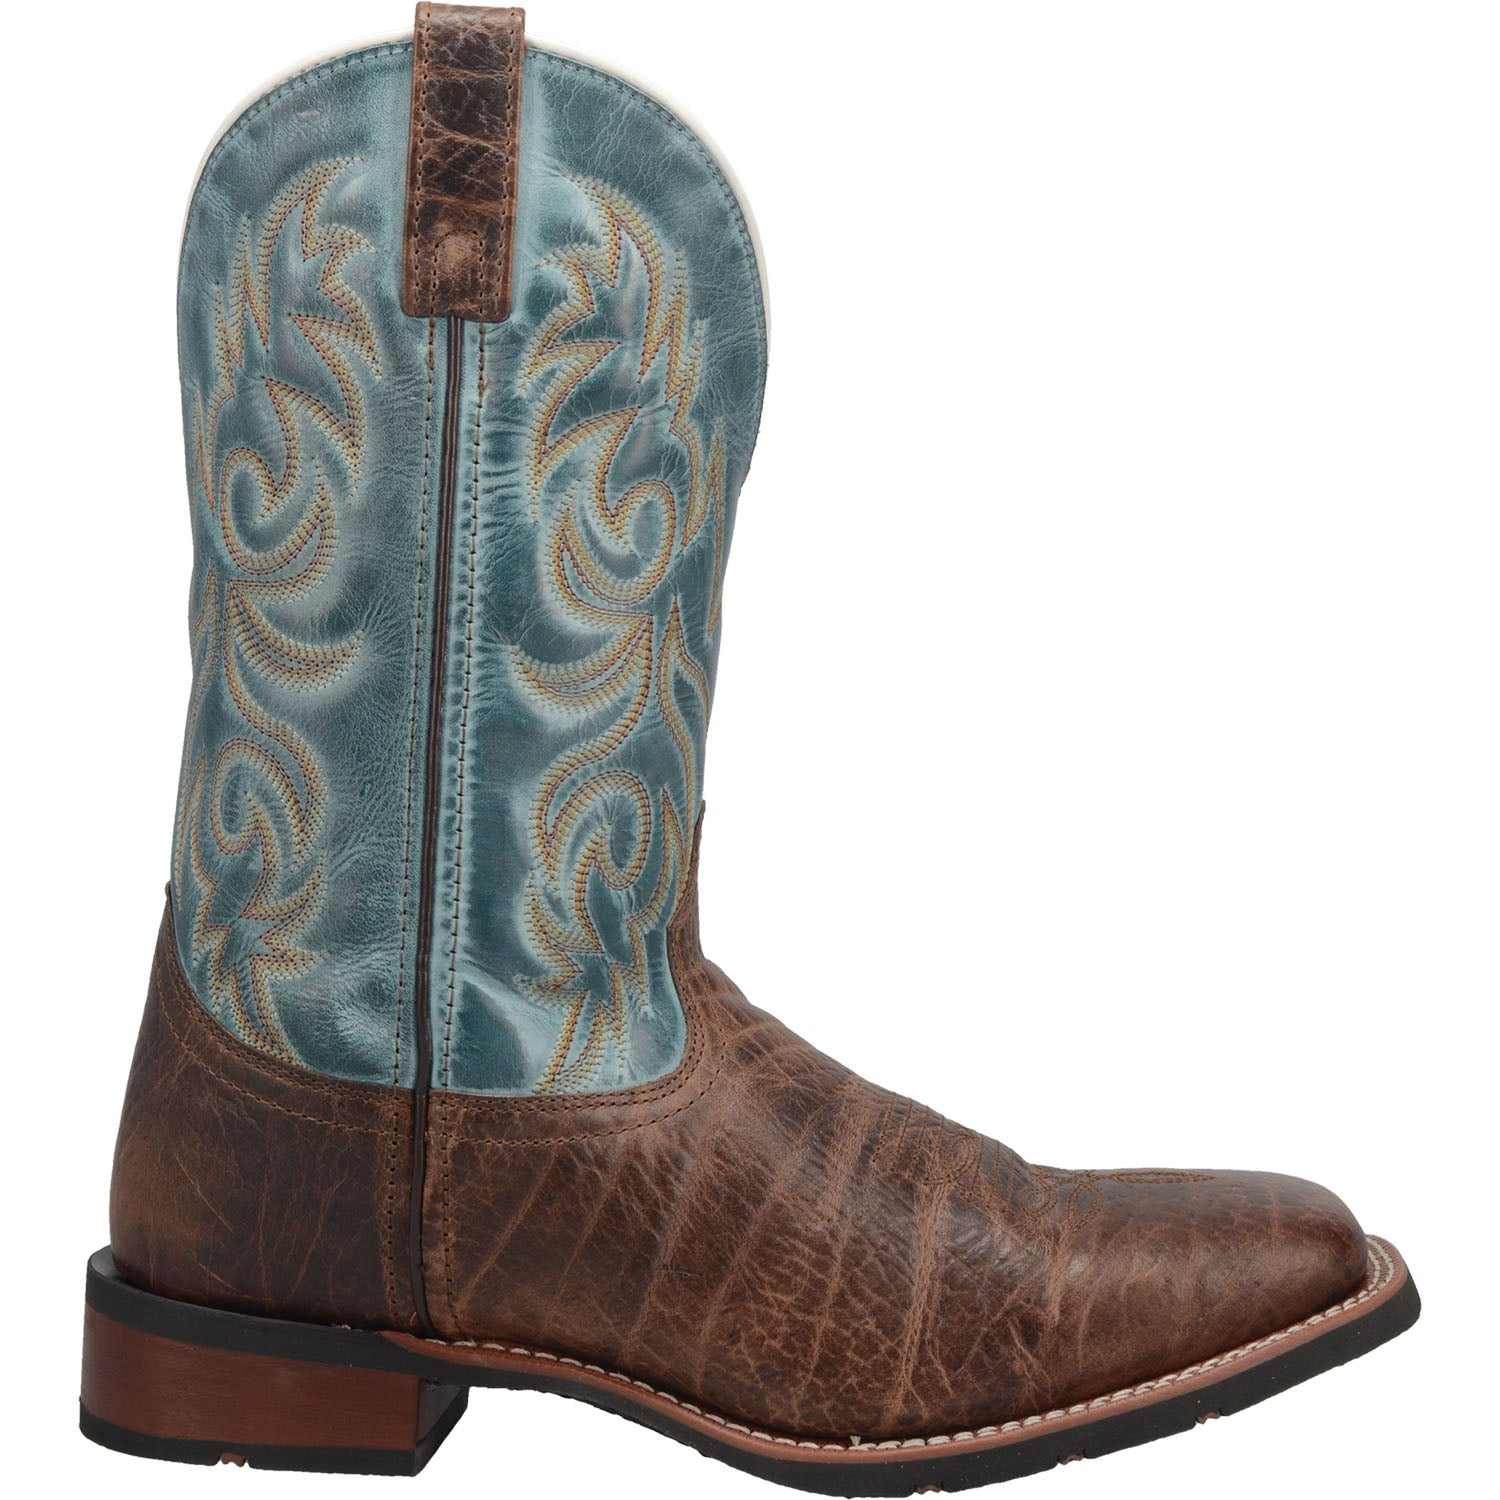 BISBEE LEATHER BOOT 28111096545322